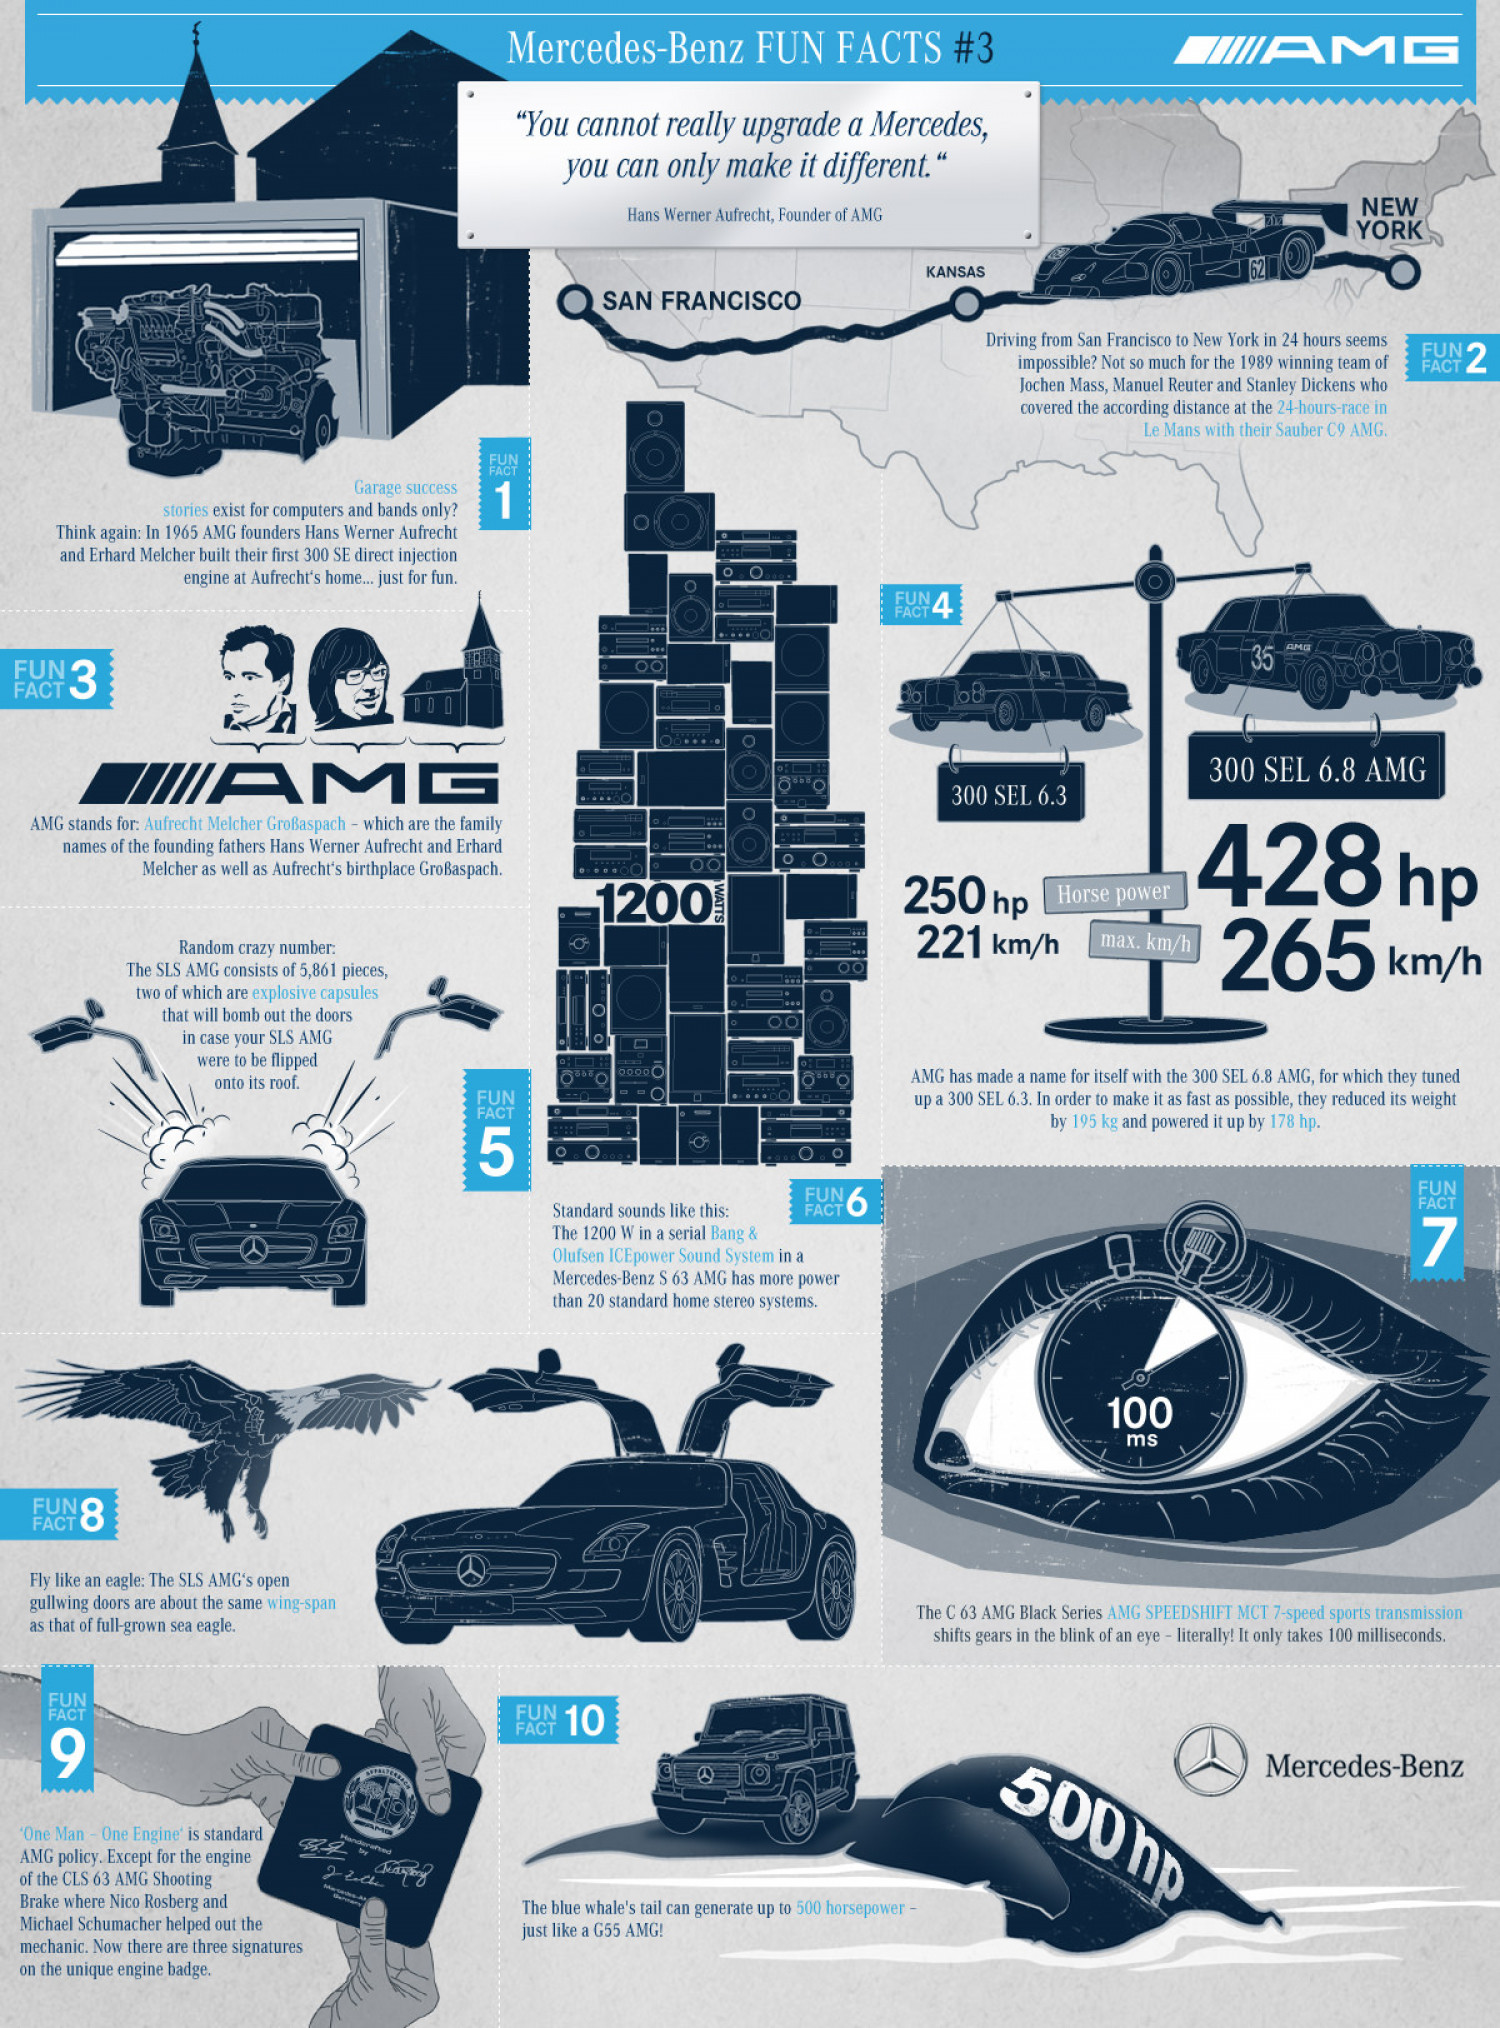 Mercedes-Benz Fun Facts #3 - AMG Infographic